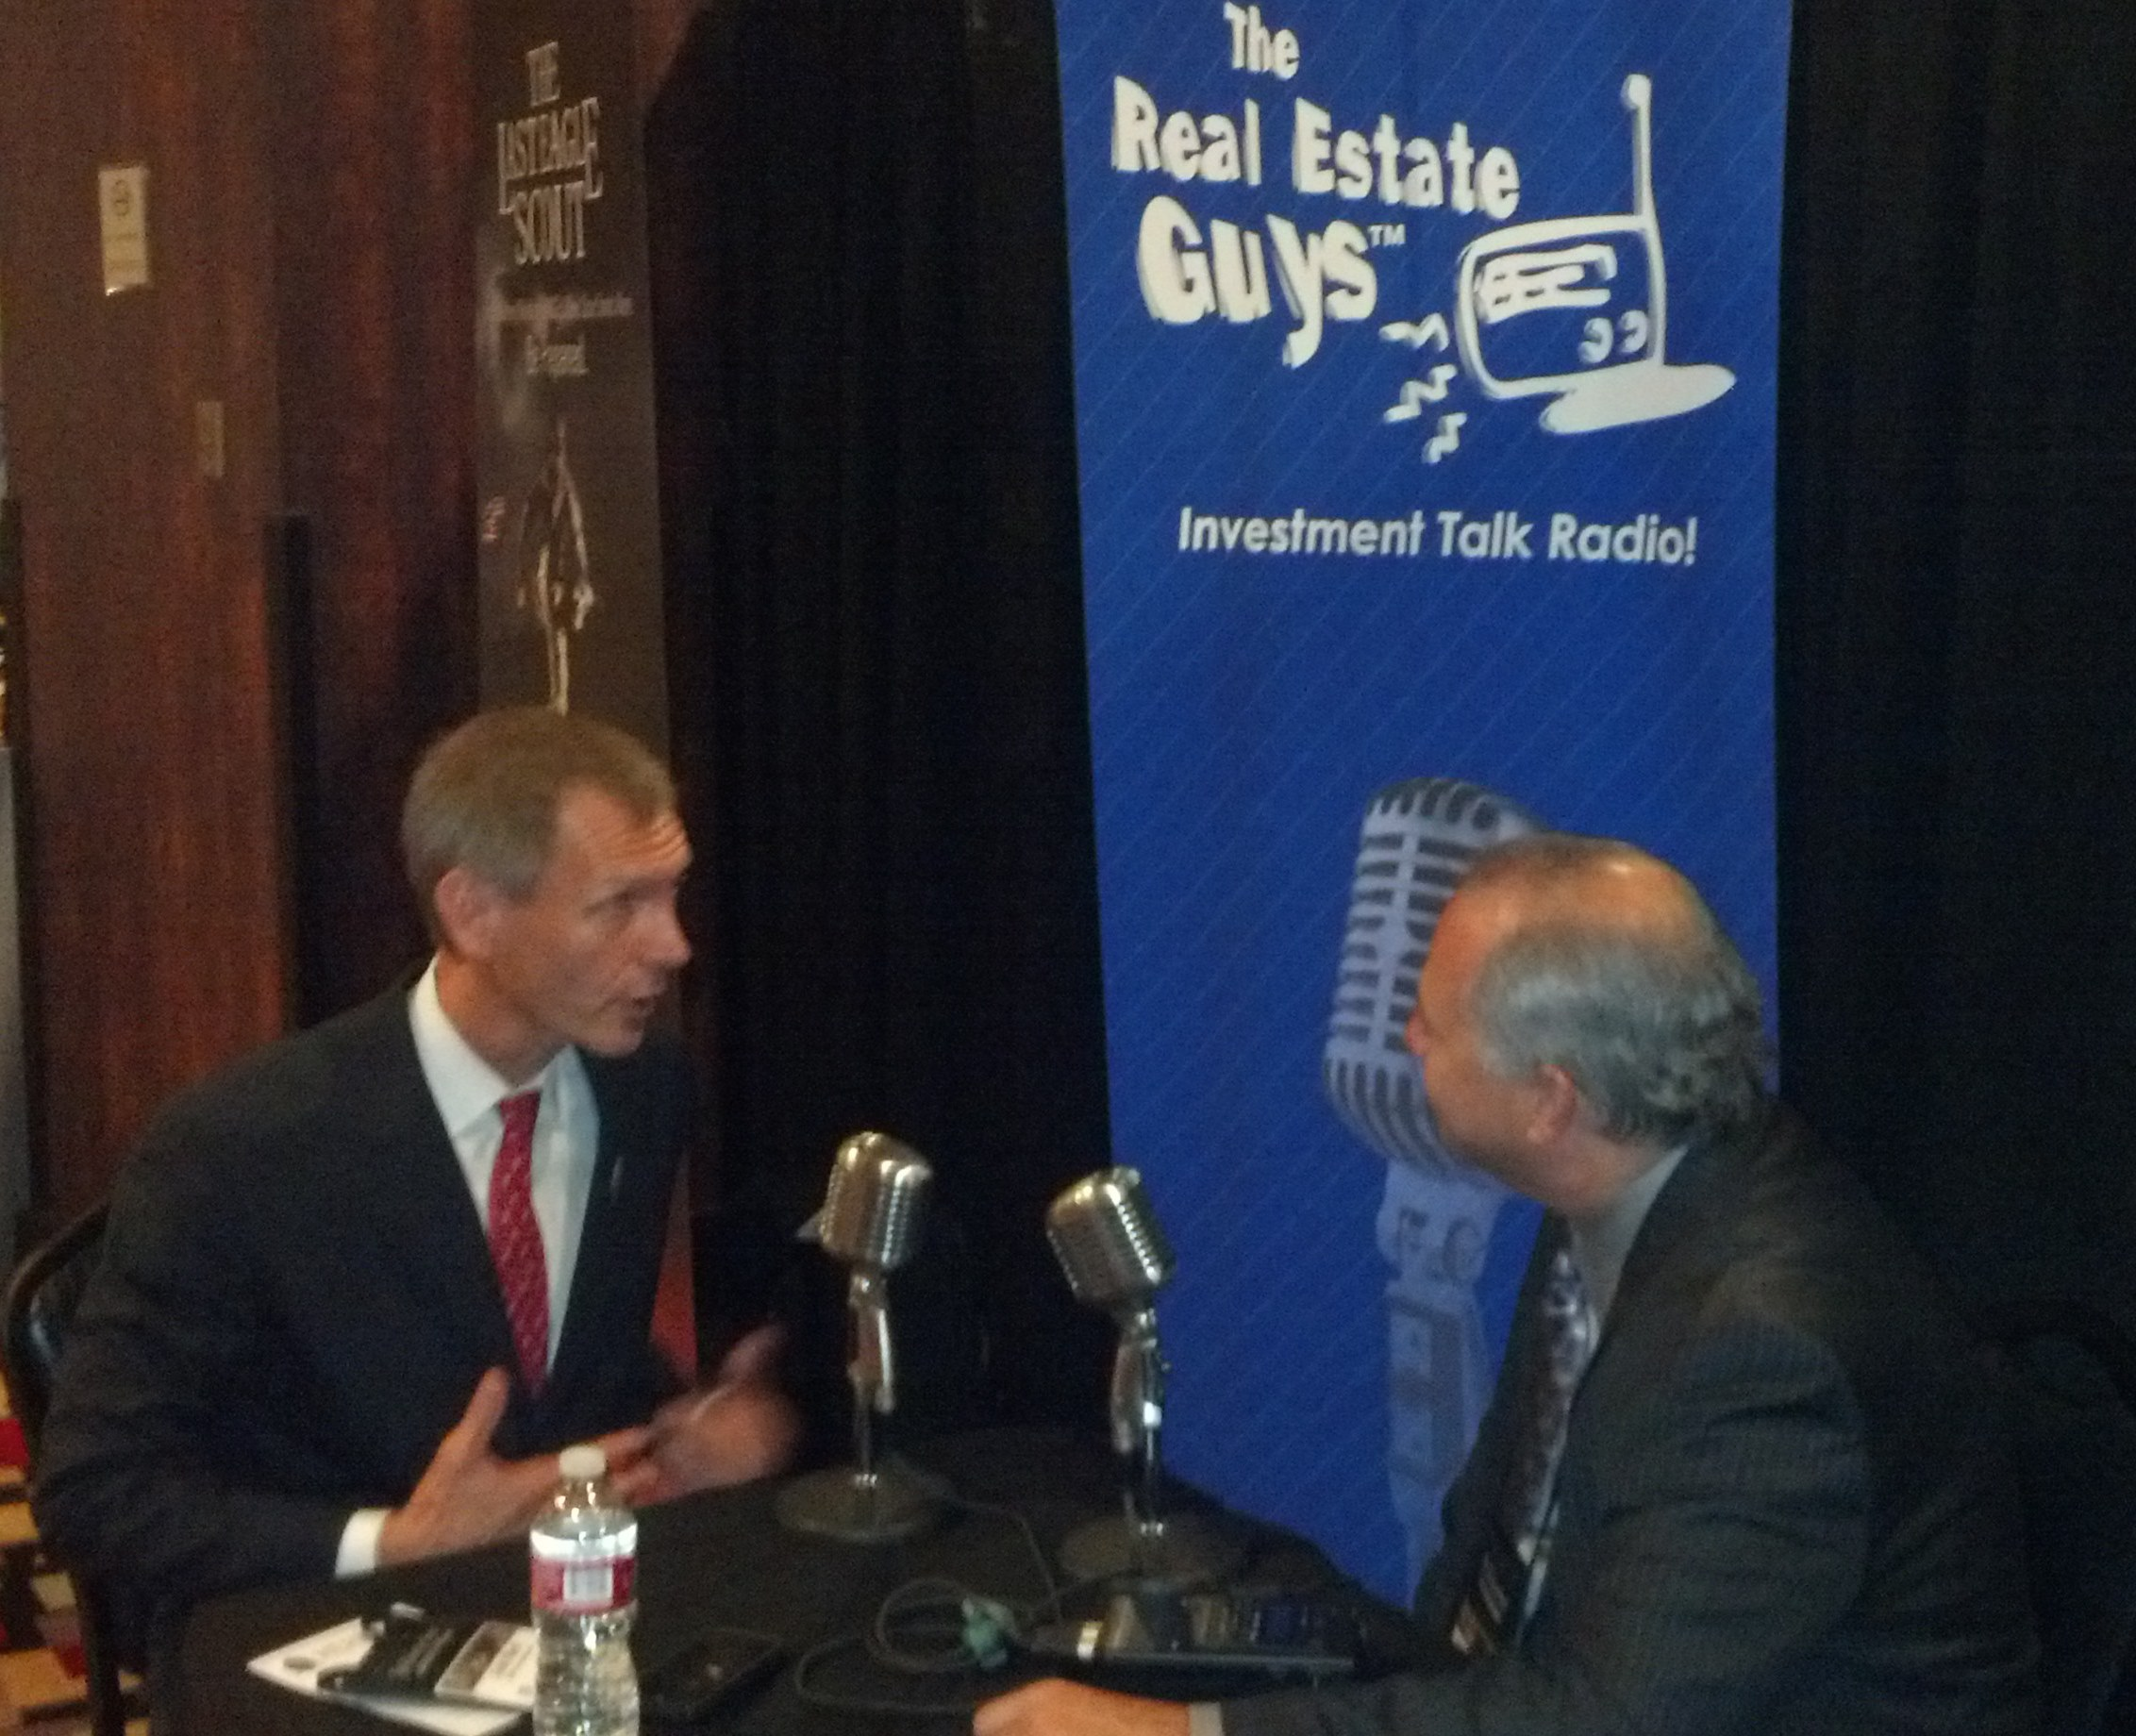 Axel Merk is intereviewed at Freedom Fest by The Real Estate Guys host Robert Helms